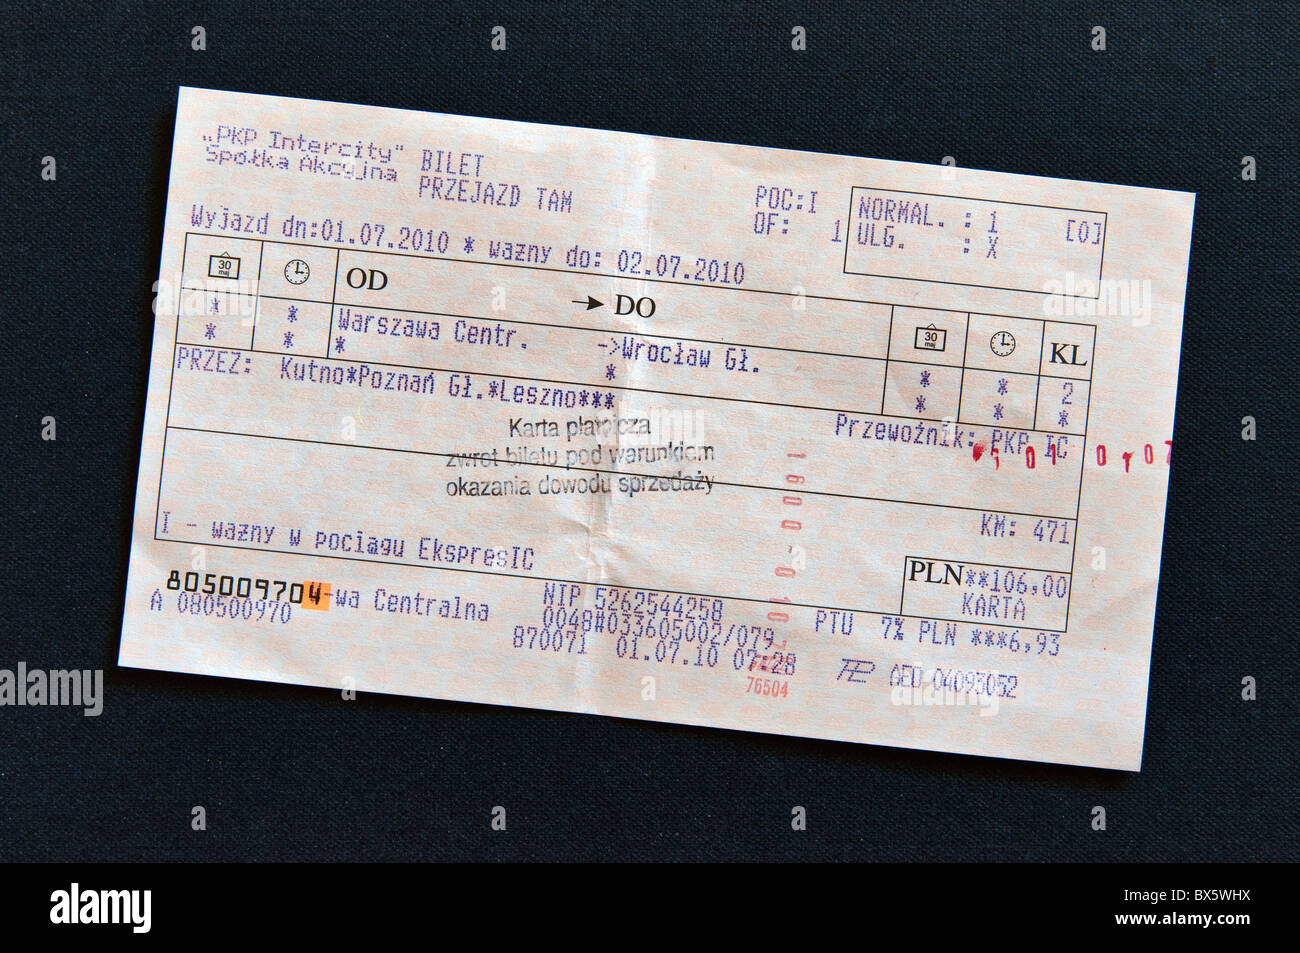 Validated train ticket for express train from Warsaw to Wroclaw, Poland Stock Photo